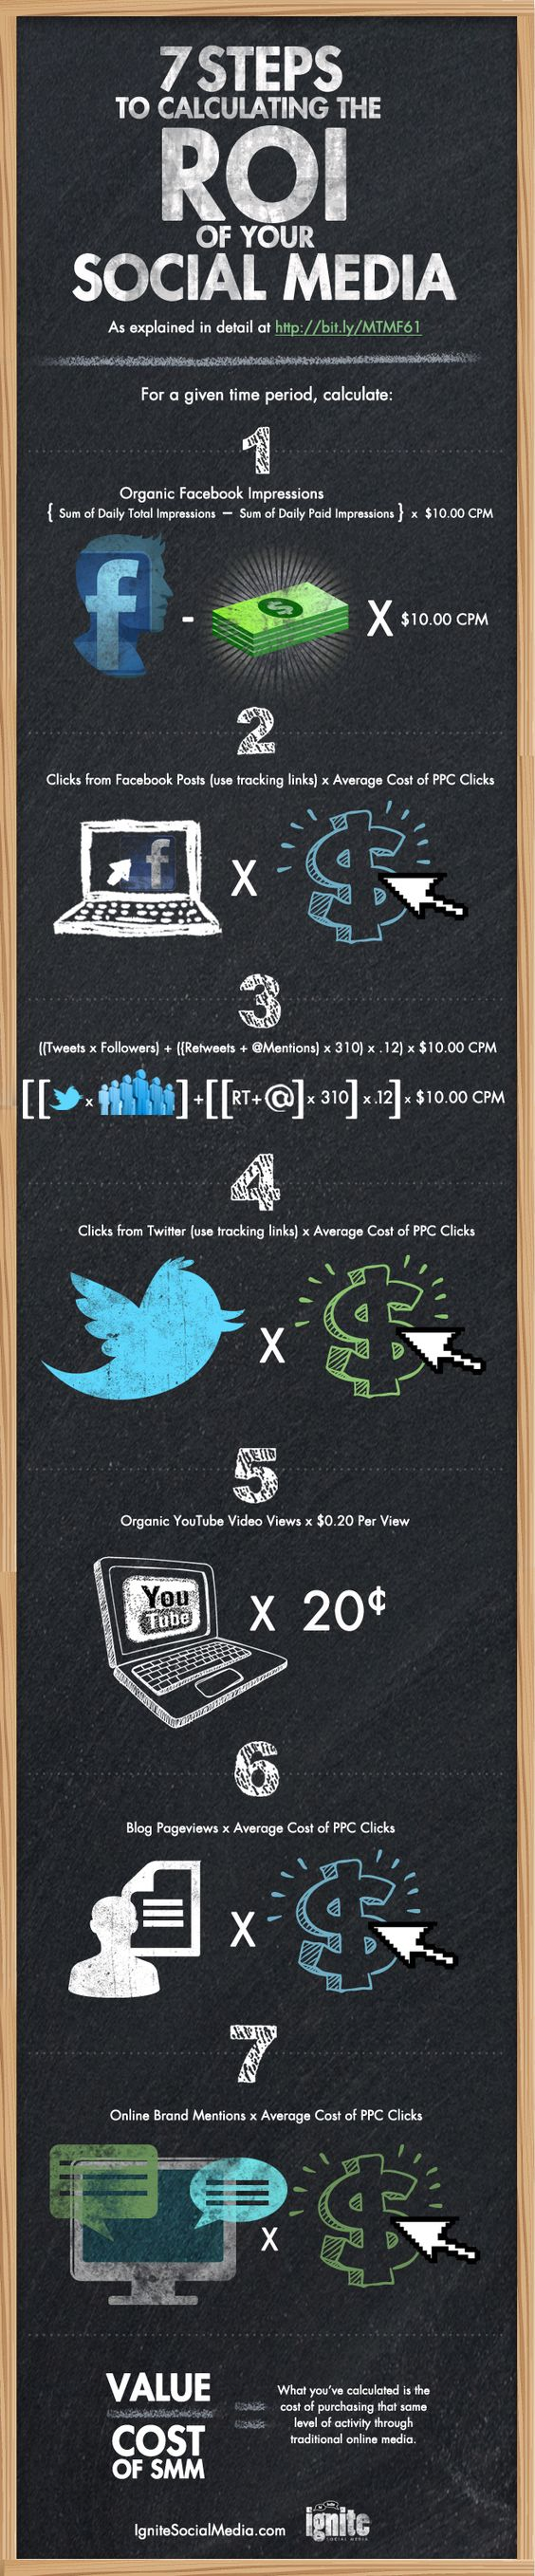 How to calculate the ROI of your Social Media